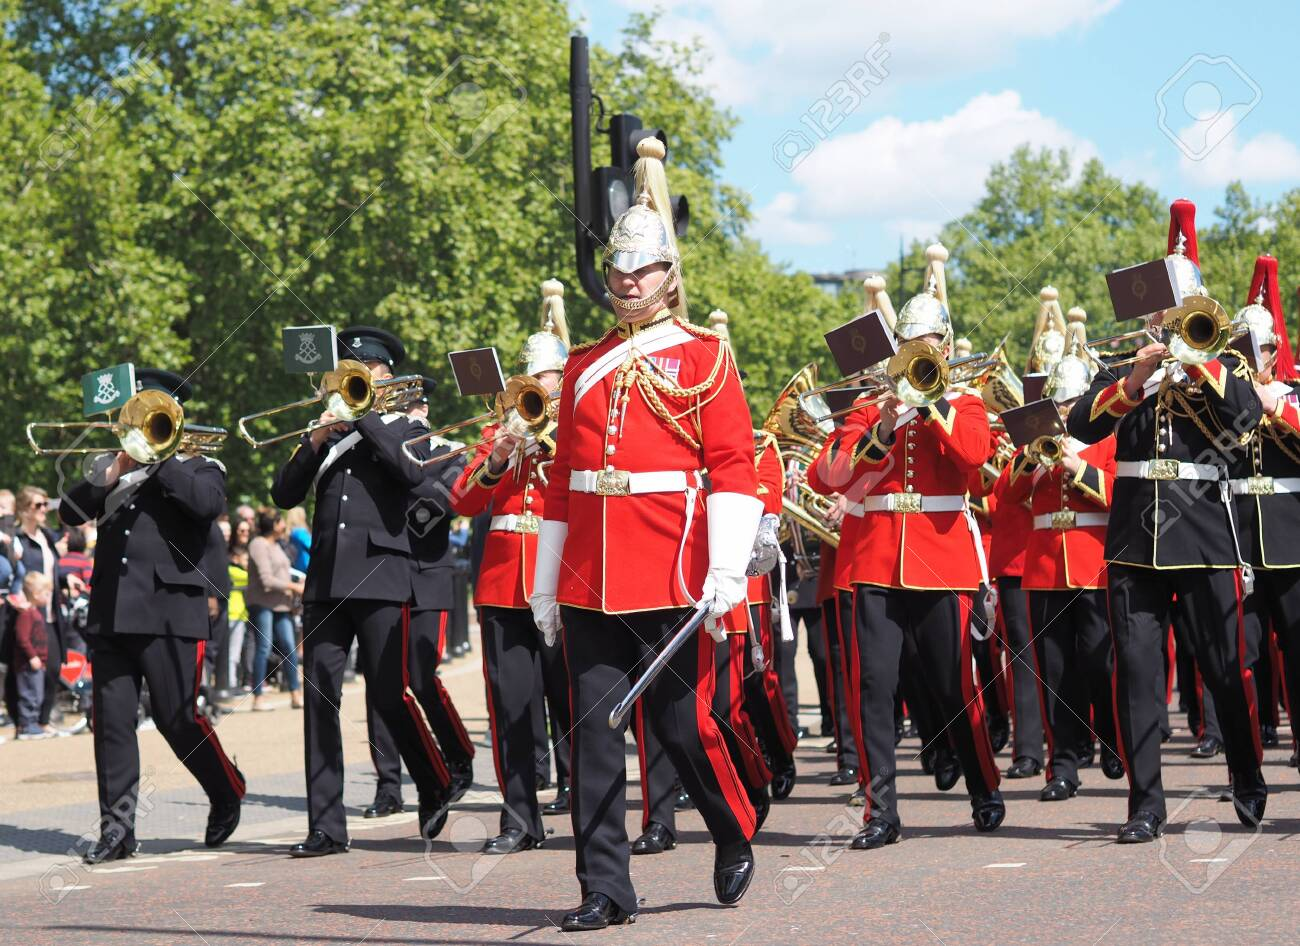 London, UK 12 May 2019: Cavalry British Army band play after